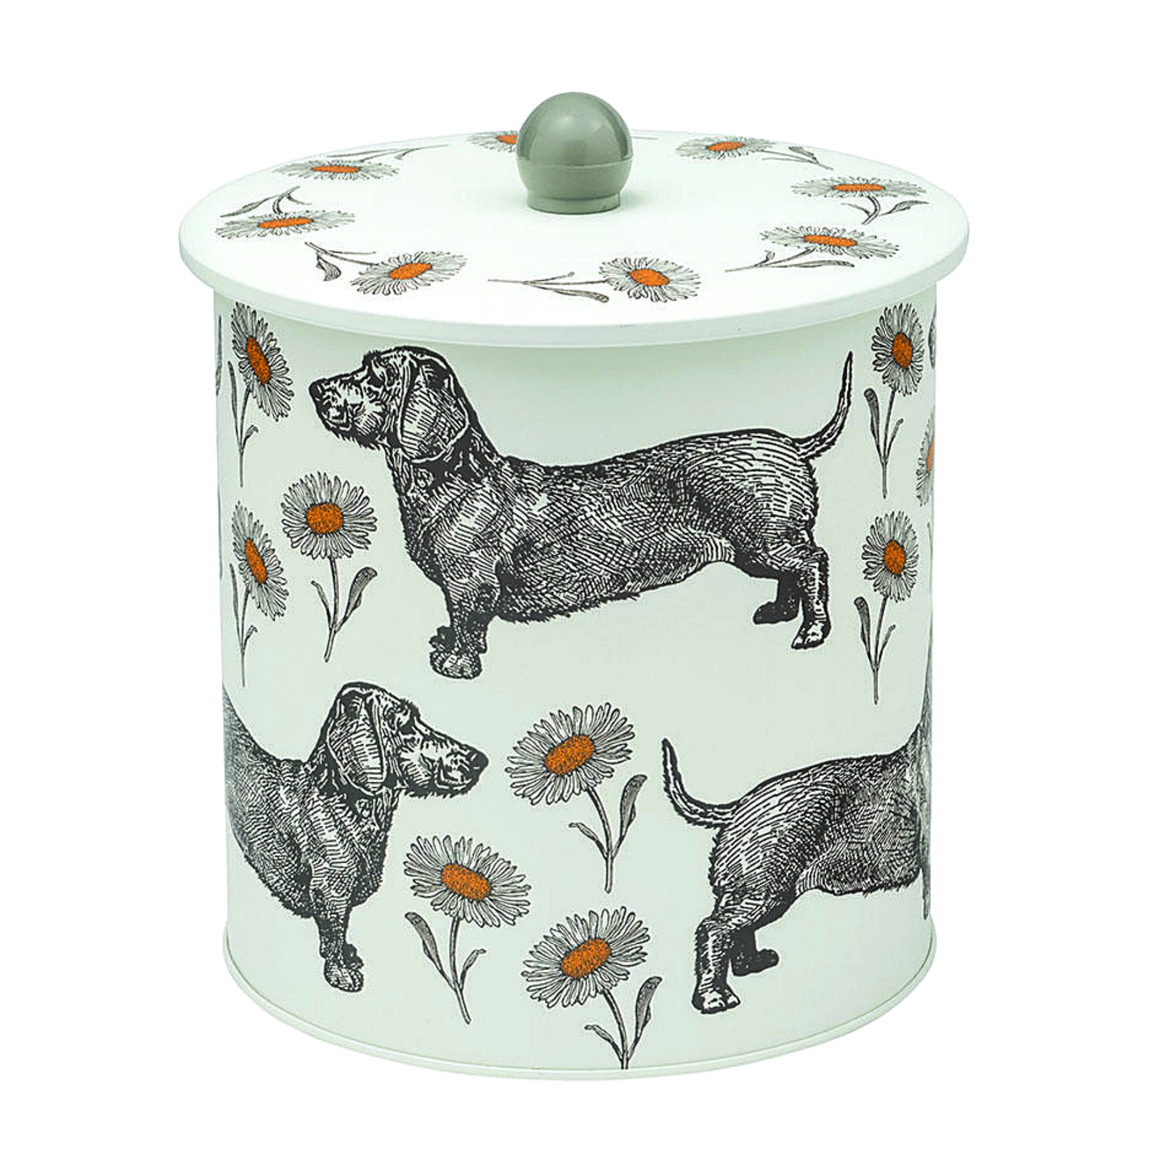 DOG & DAISY BISCUIT BARREL / MADE IN THE UK